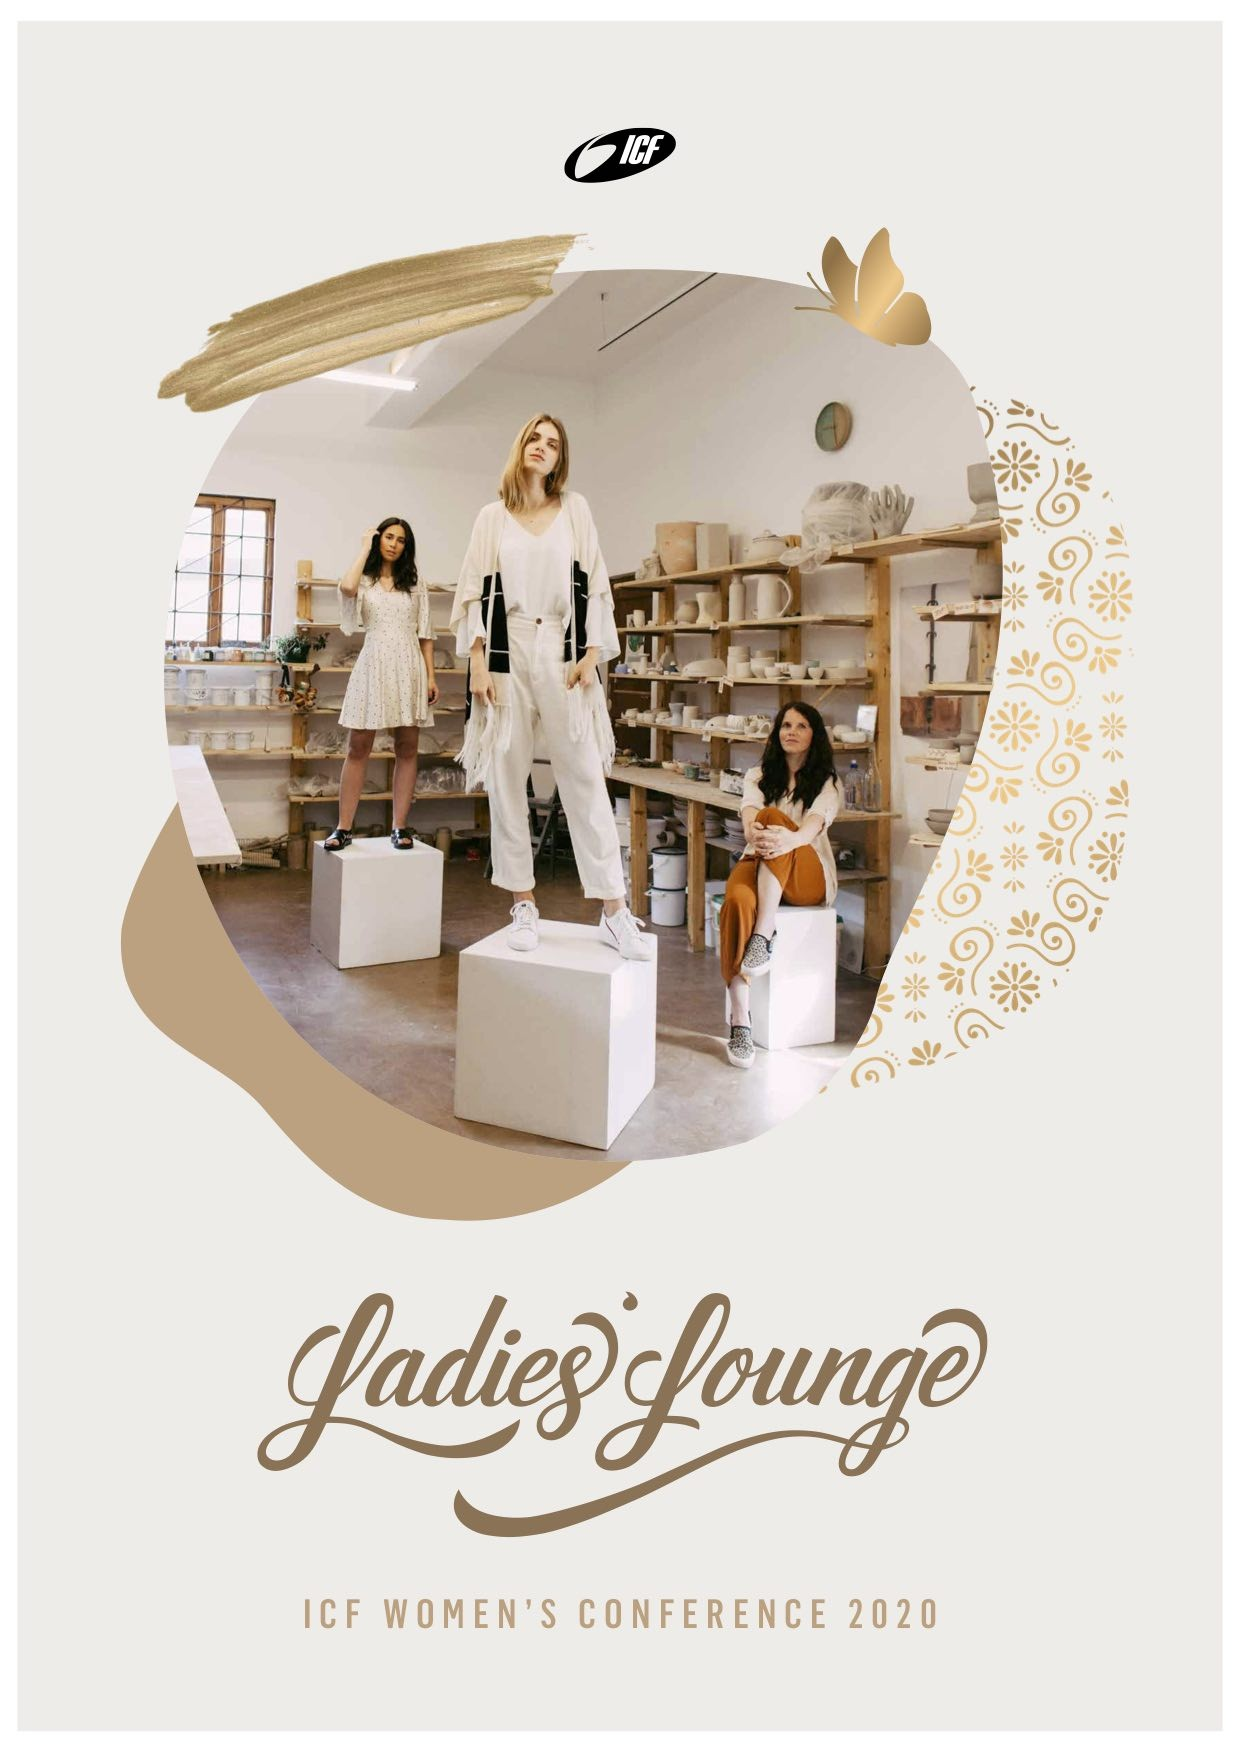 ICF Ladies Lounge 2020 - go further! in Zürich